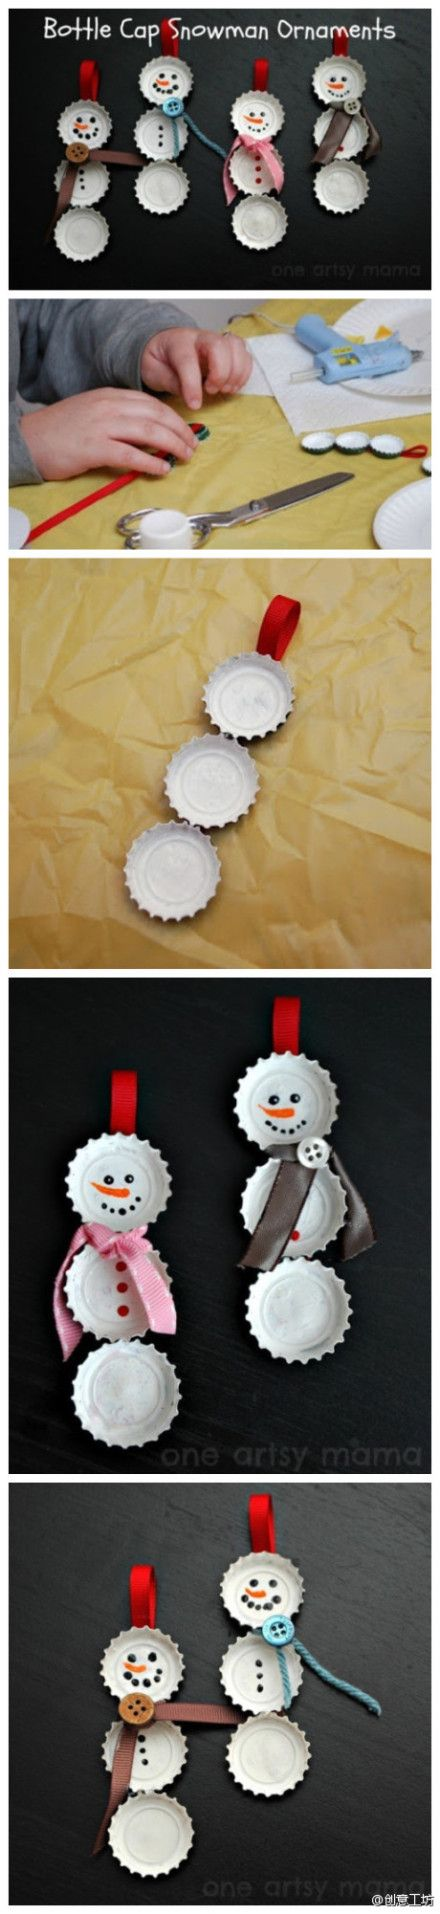 利用废弃的瓶盖制作的小雪人,让这个圣诞节充满小小创意~~~Cool Christmas Crafts , Paper Crafts for Teens , paper, craft, xmas ,wrap, gift, decor,blumen,basteln,bastelvorlage,tutorial diy, winter kids crafts, recycled, crafts , snowman, decoration,xmas